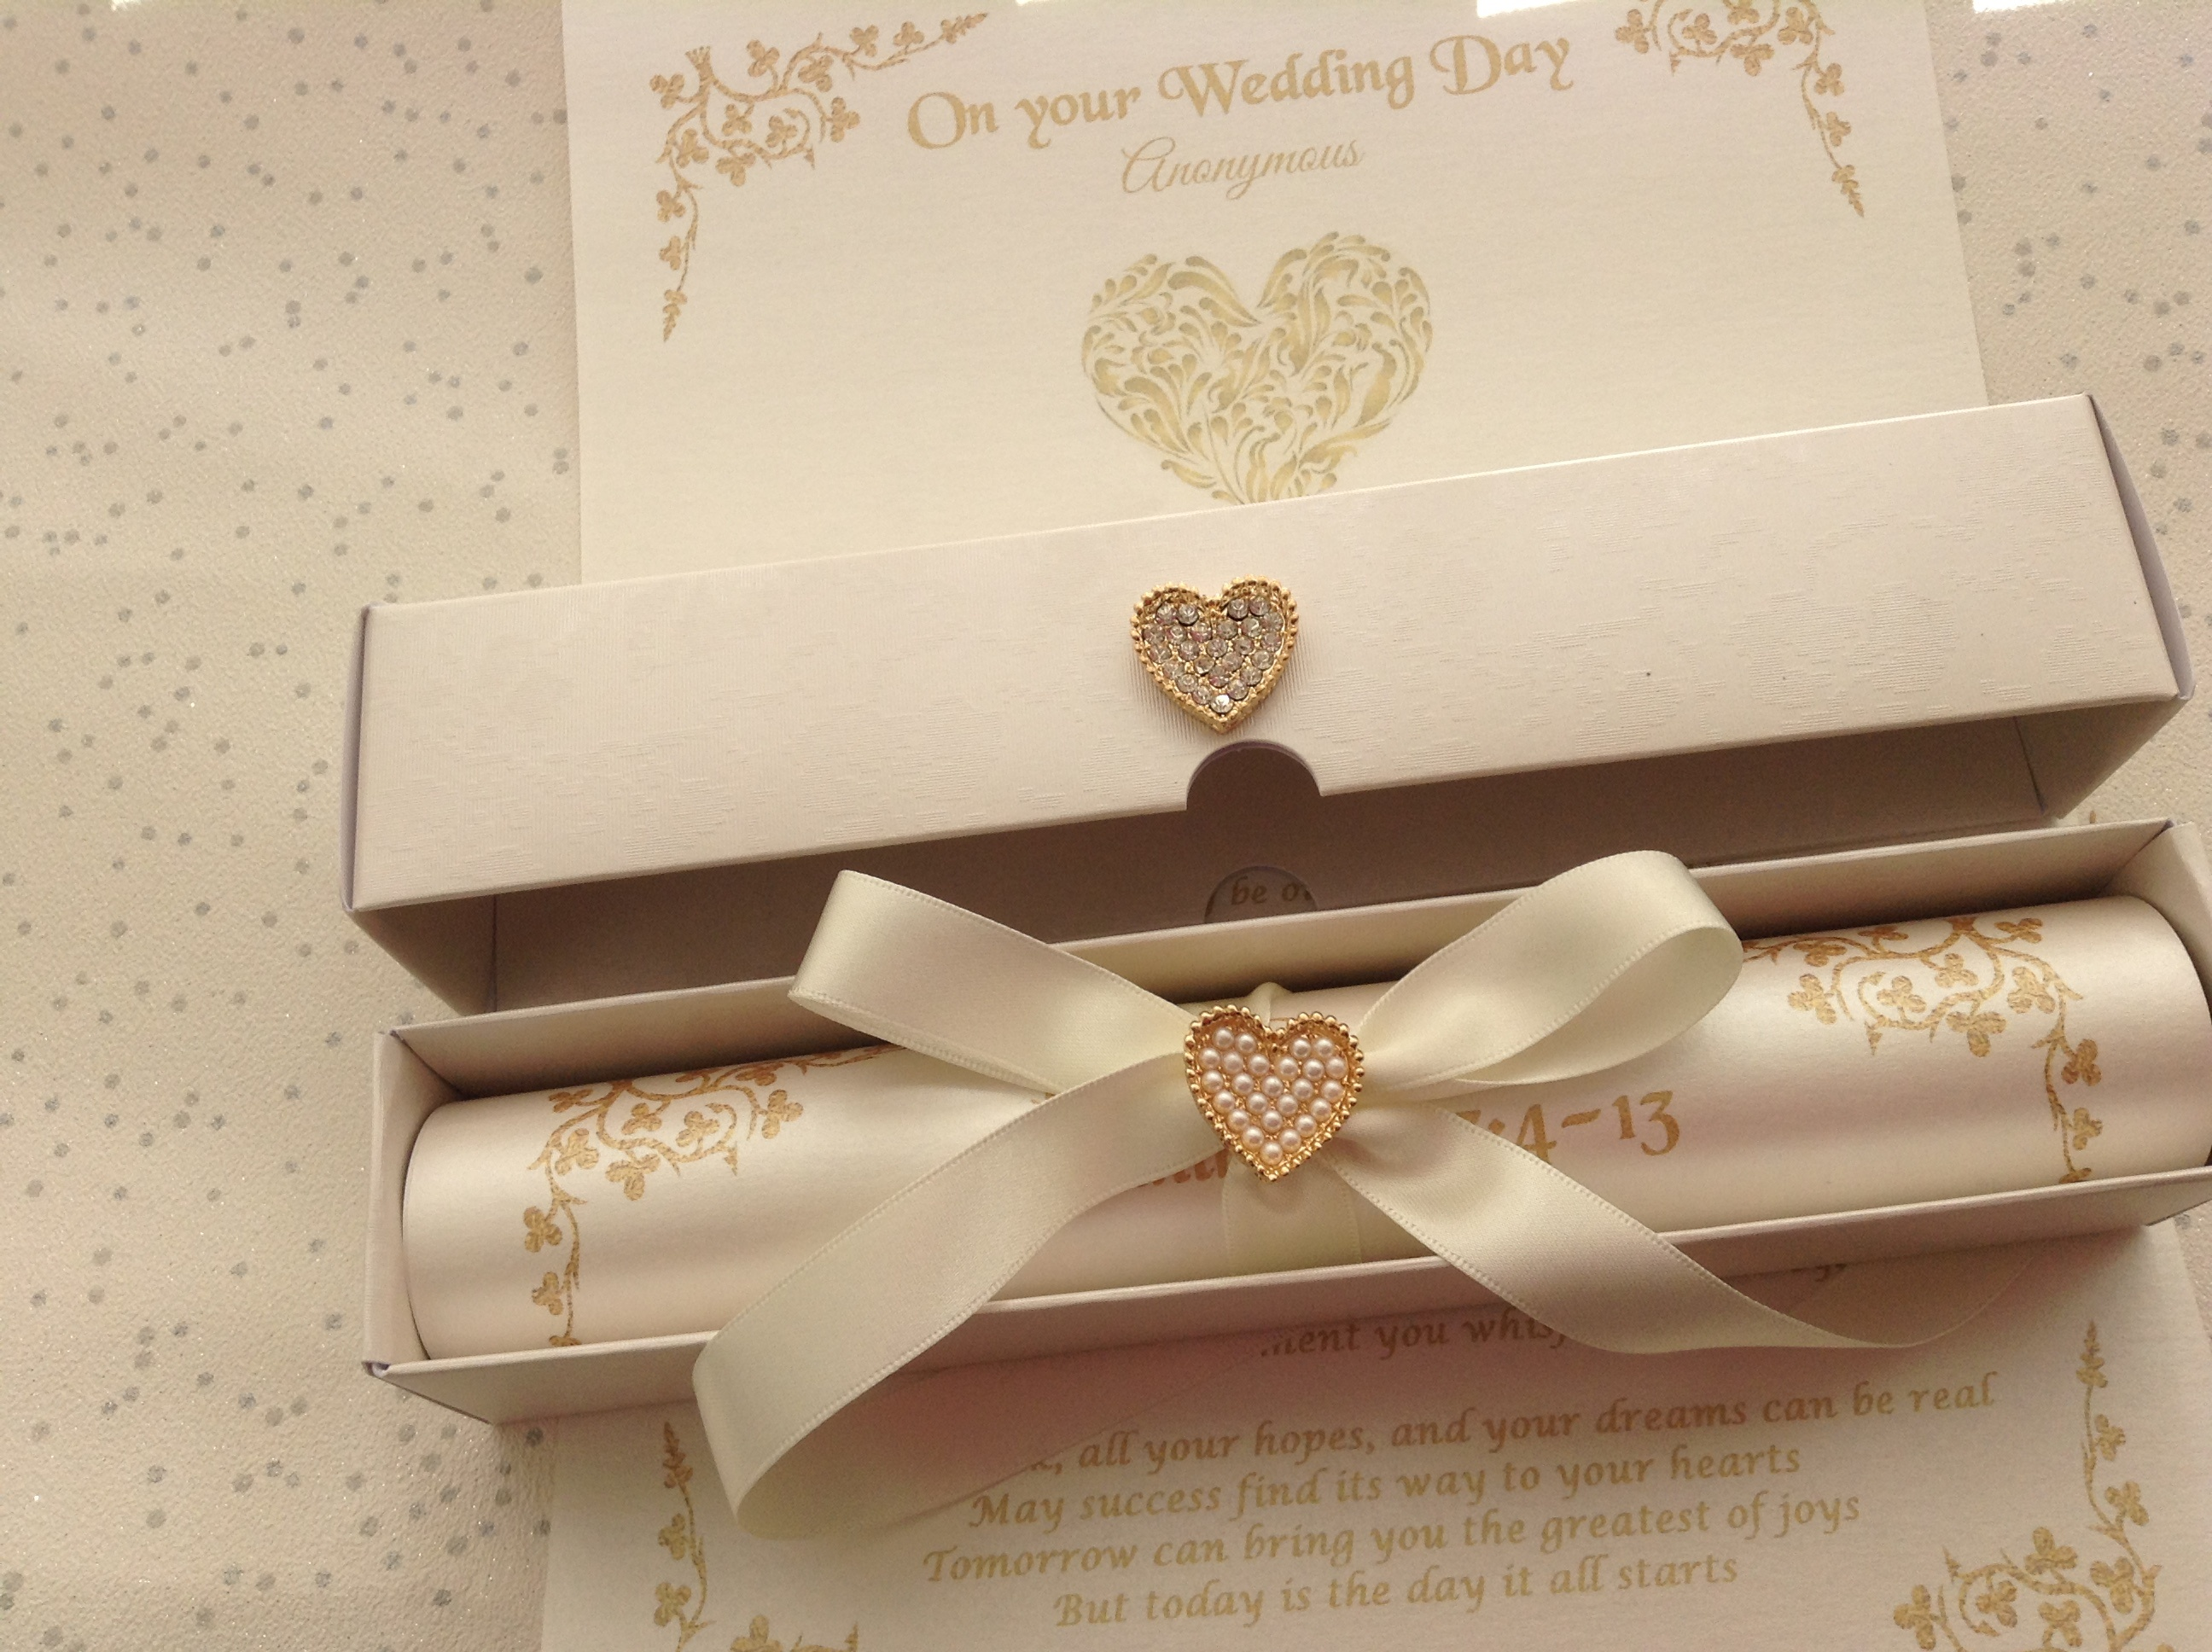 A4 scroll showing a gold pearl heart embellishment